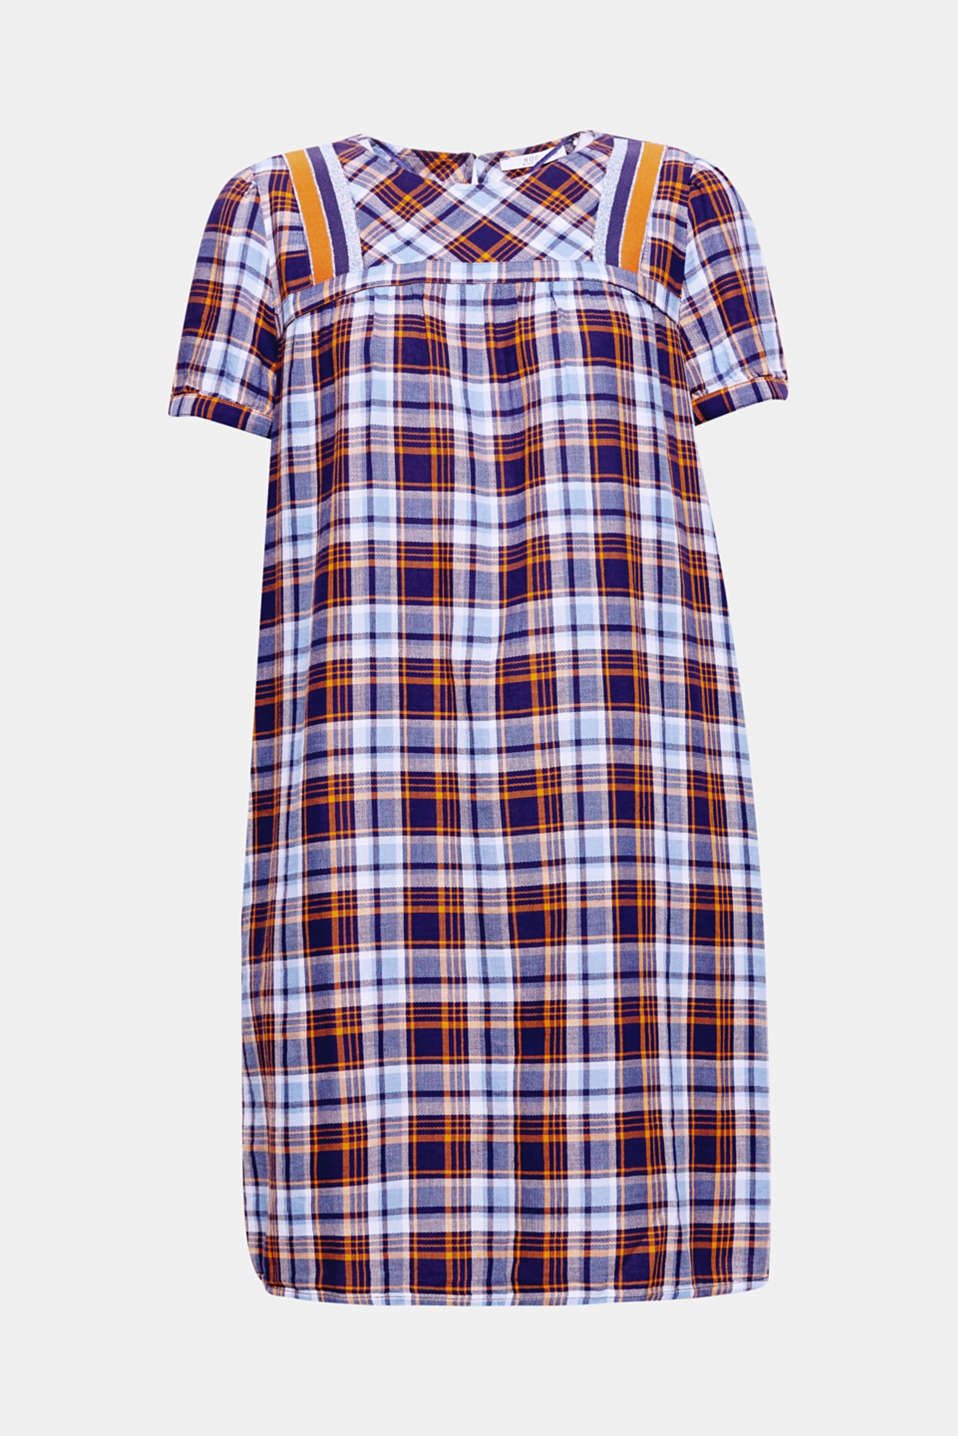 This figure-skimming dress is defined by its lightweight cotton fabric and its trendy check pattern, which is accentuated by modern glittery stripes at the neckline.